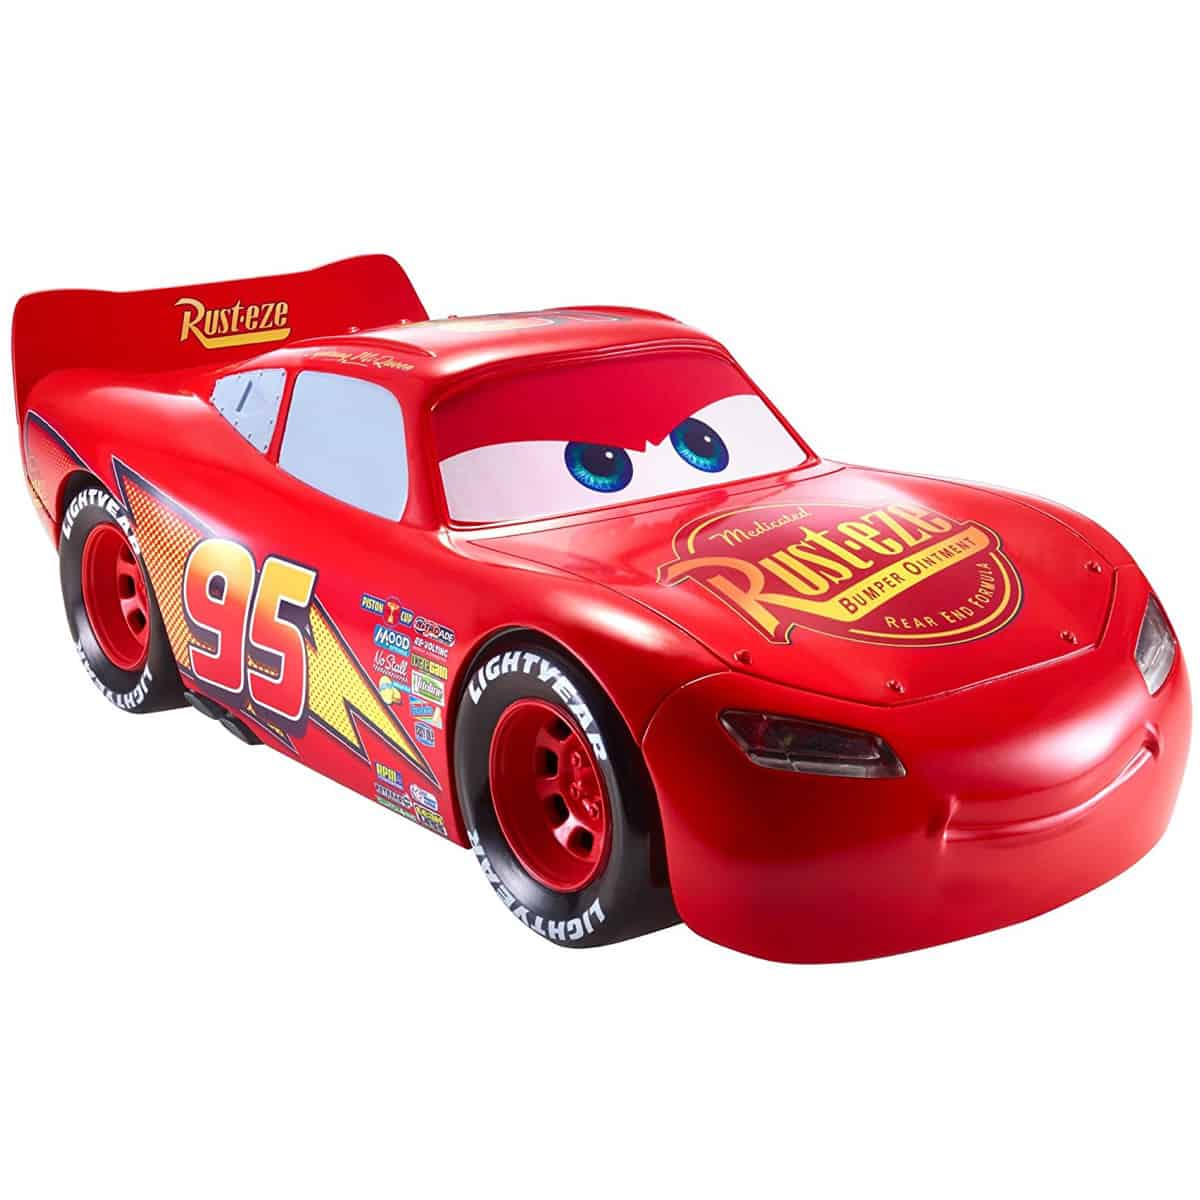 Lightning Mcqueen Toy Car Prices